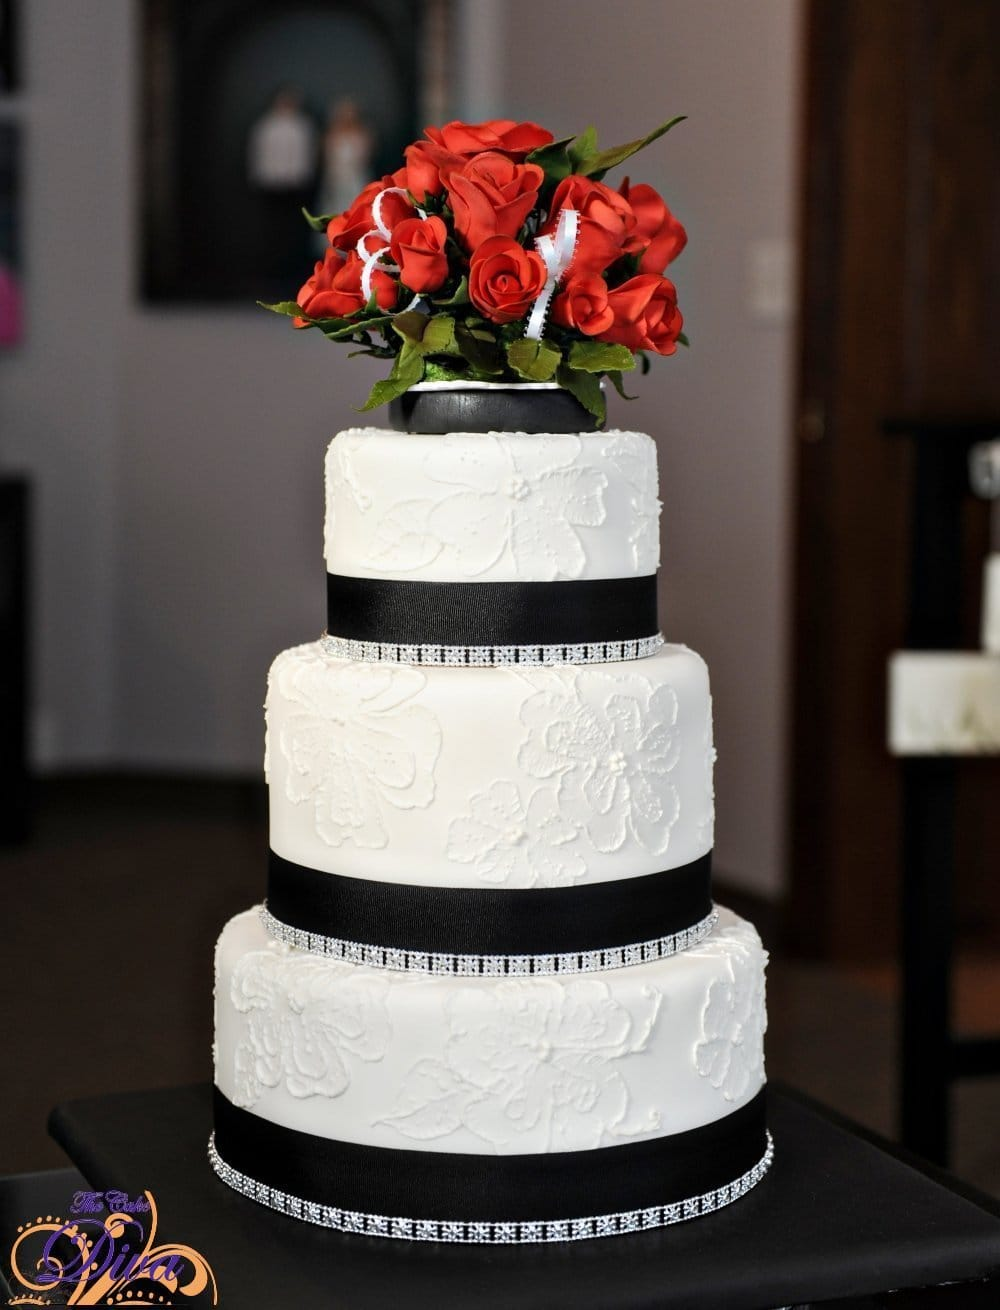 Cake diva minneapolis minnesota wedding cake